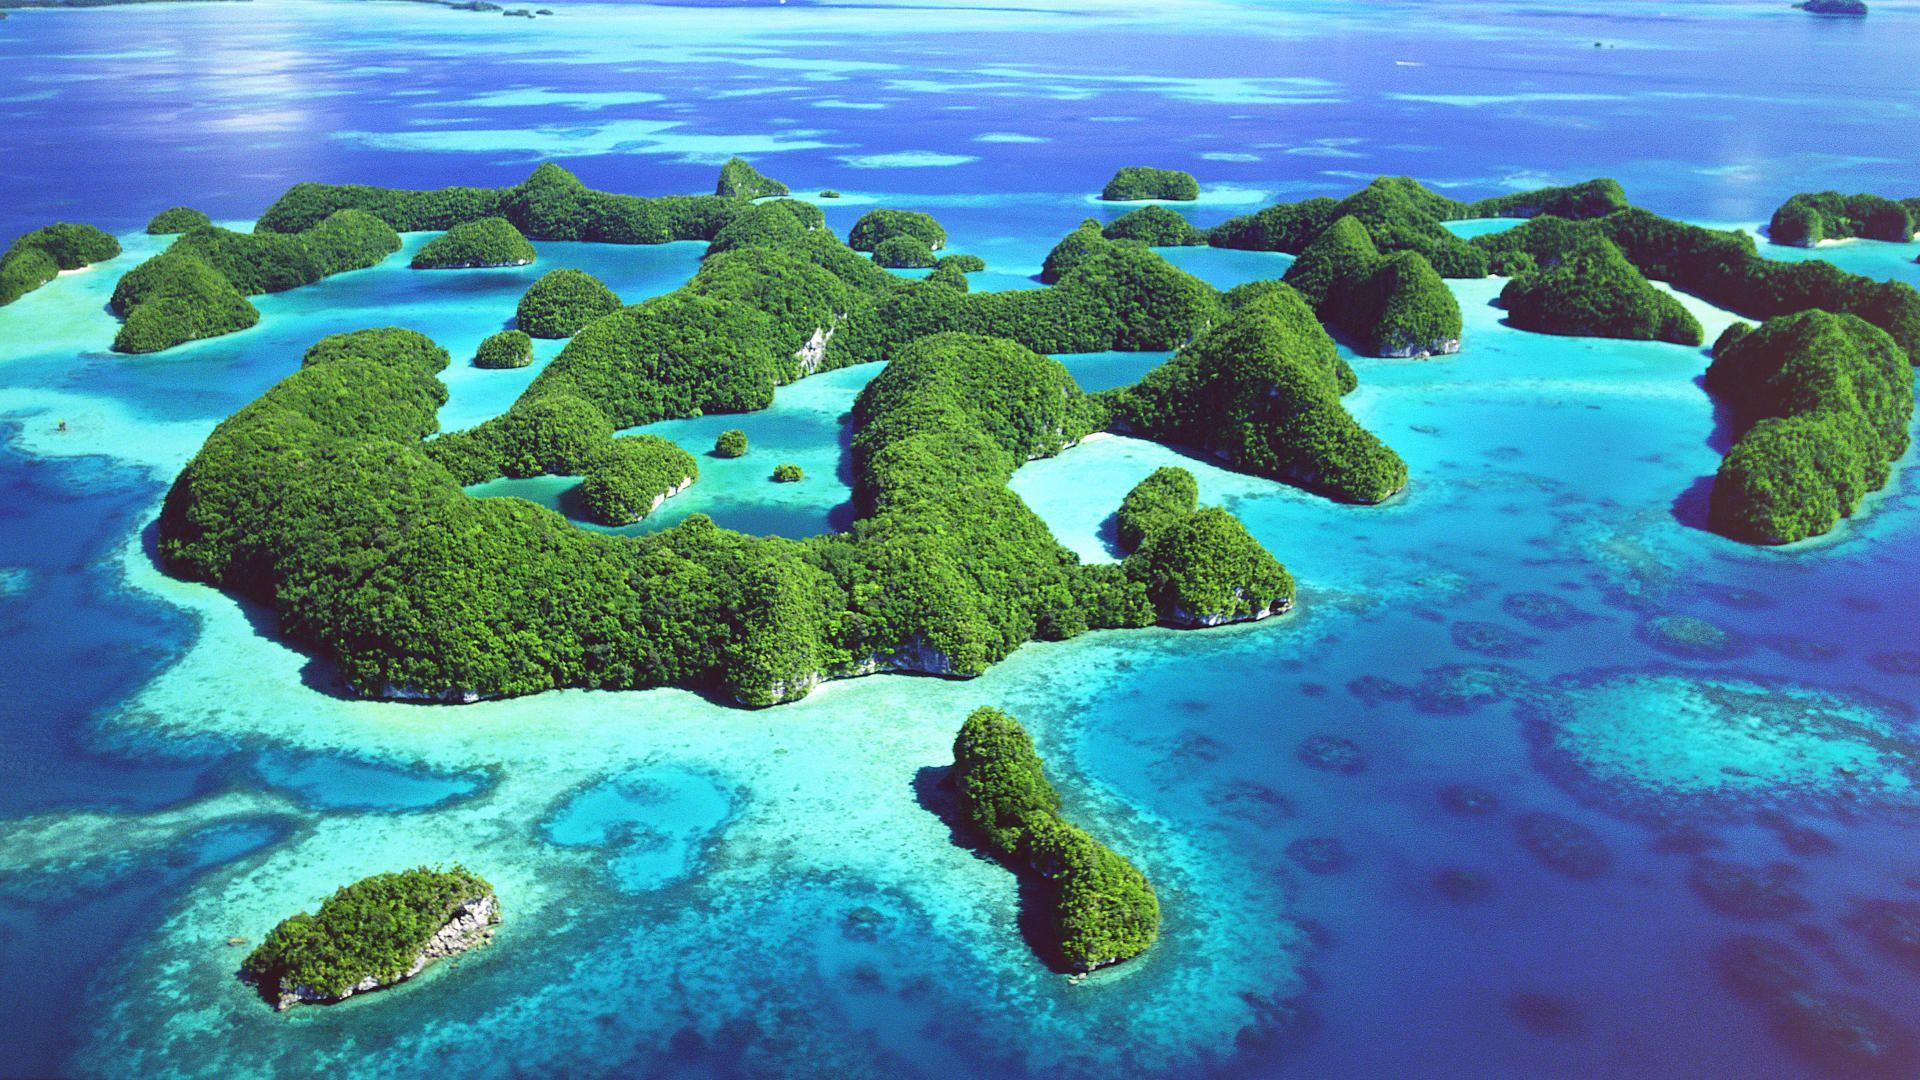 Palau Islands Hd Wallpaper | Download wallpapers page